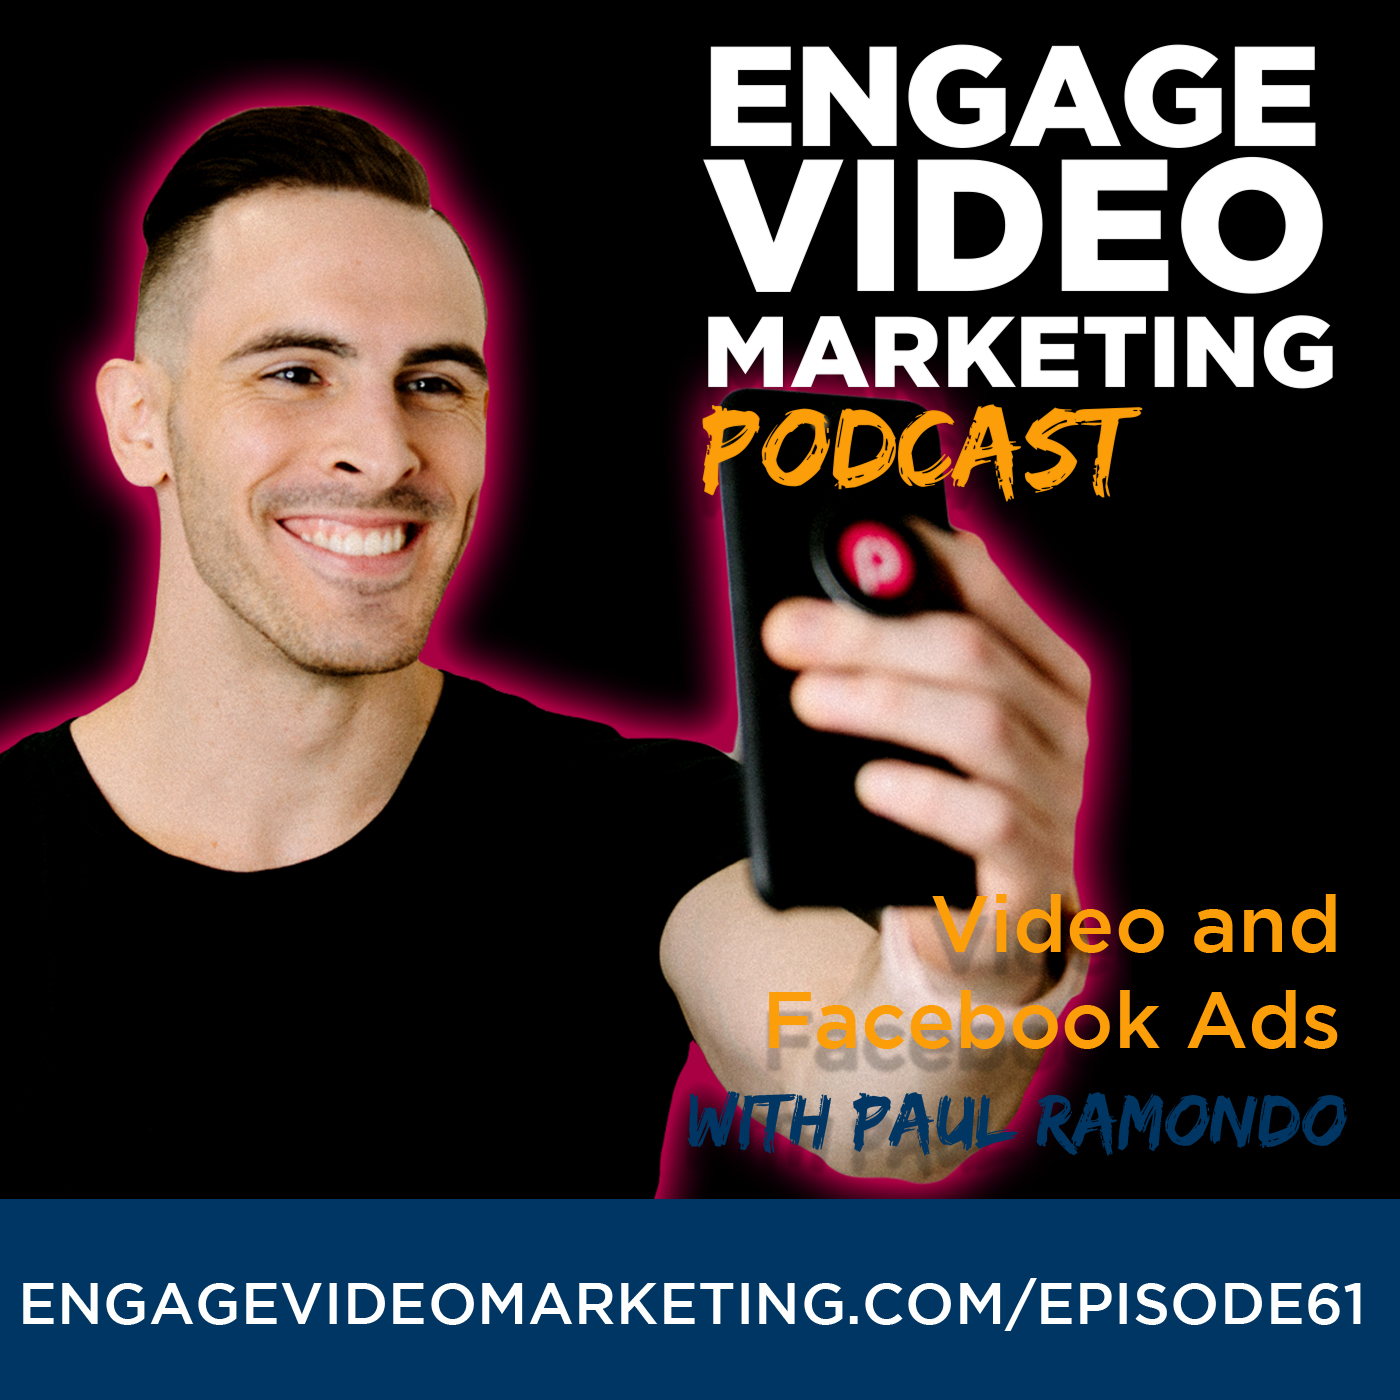 Video and Facebook Ads with Paul Ramondo